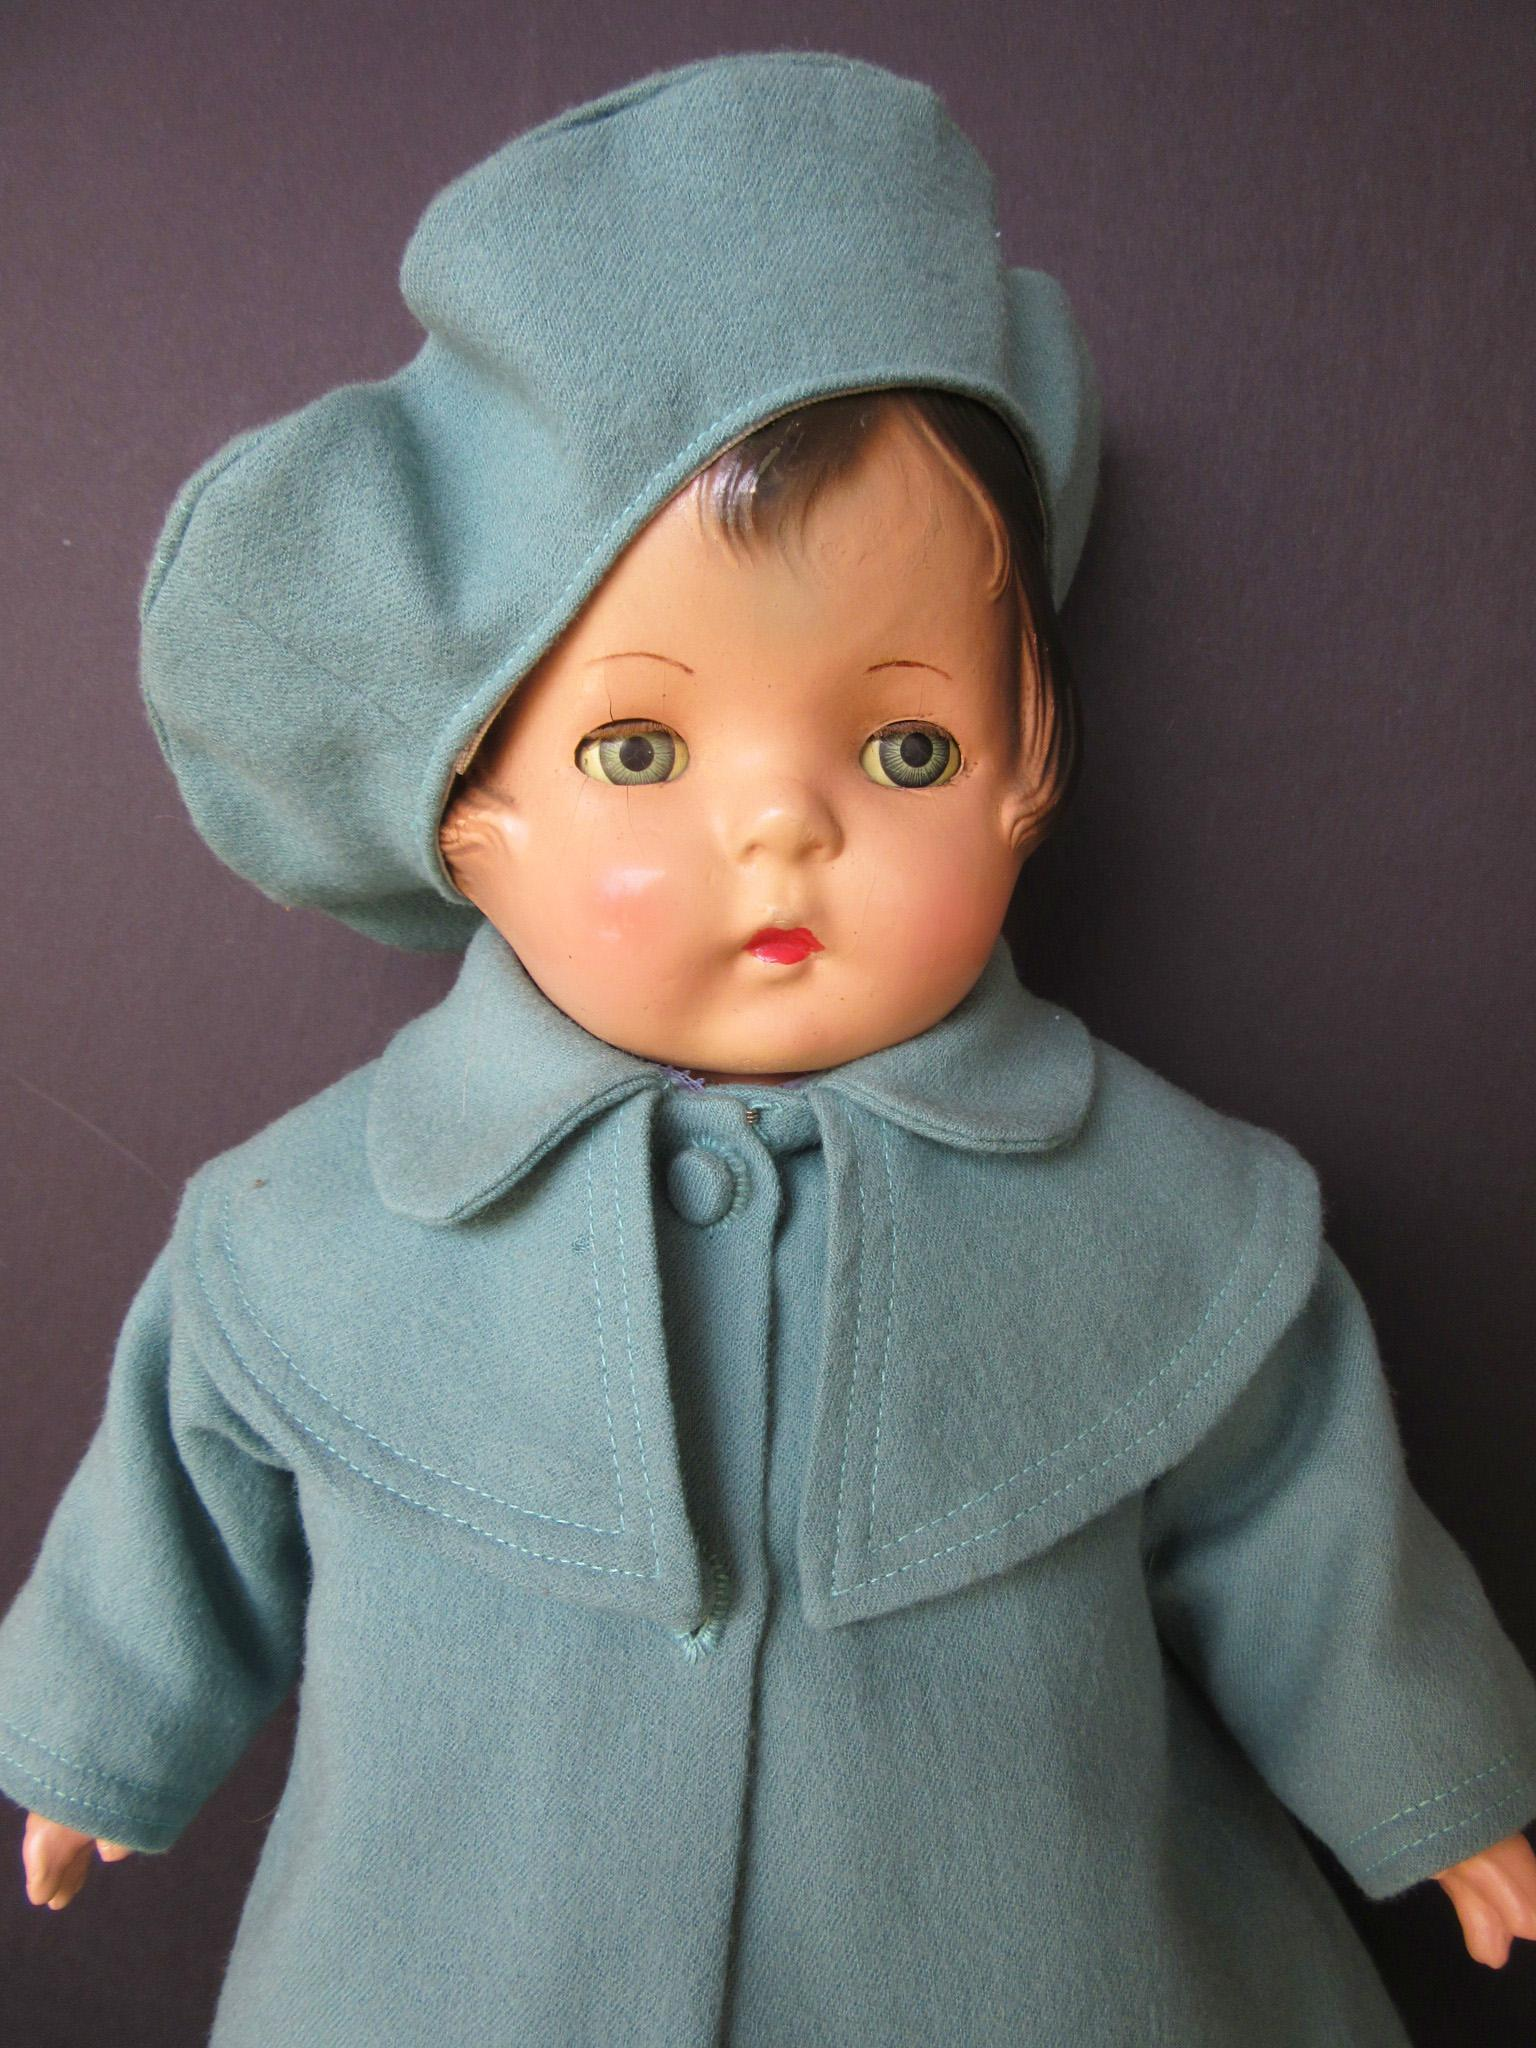 Vintage 1930 American Character Sally